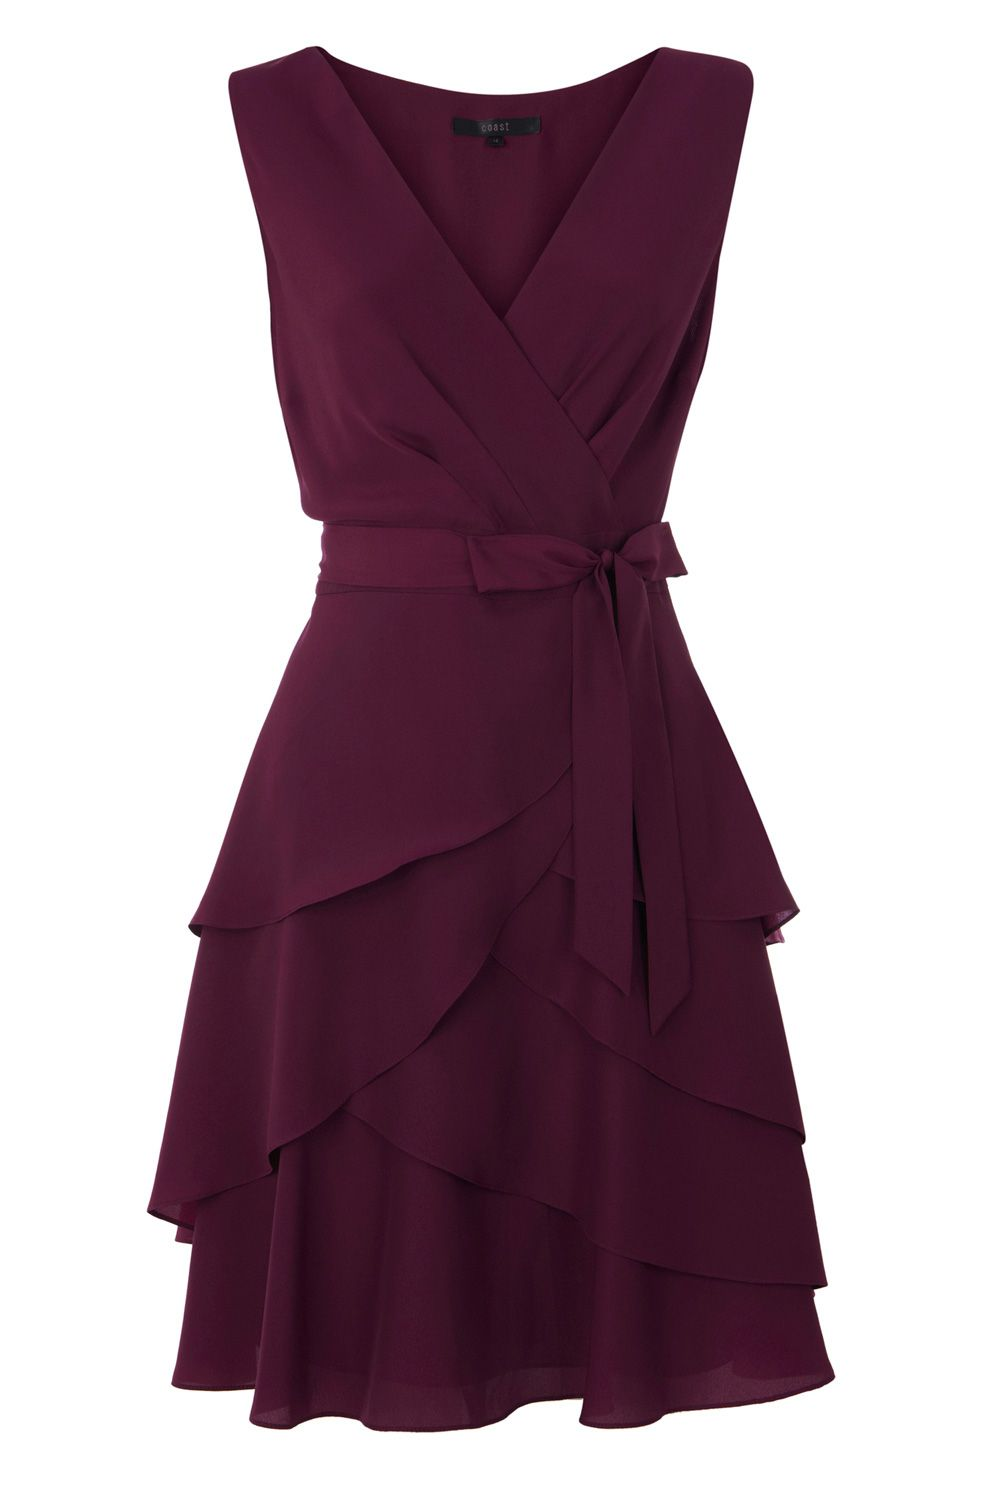 Wine color love this for bridesmaid dresses clothes i for What color shoes to wear with black dress to wedding